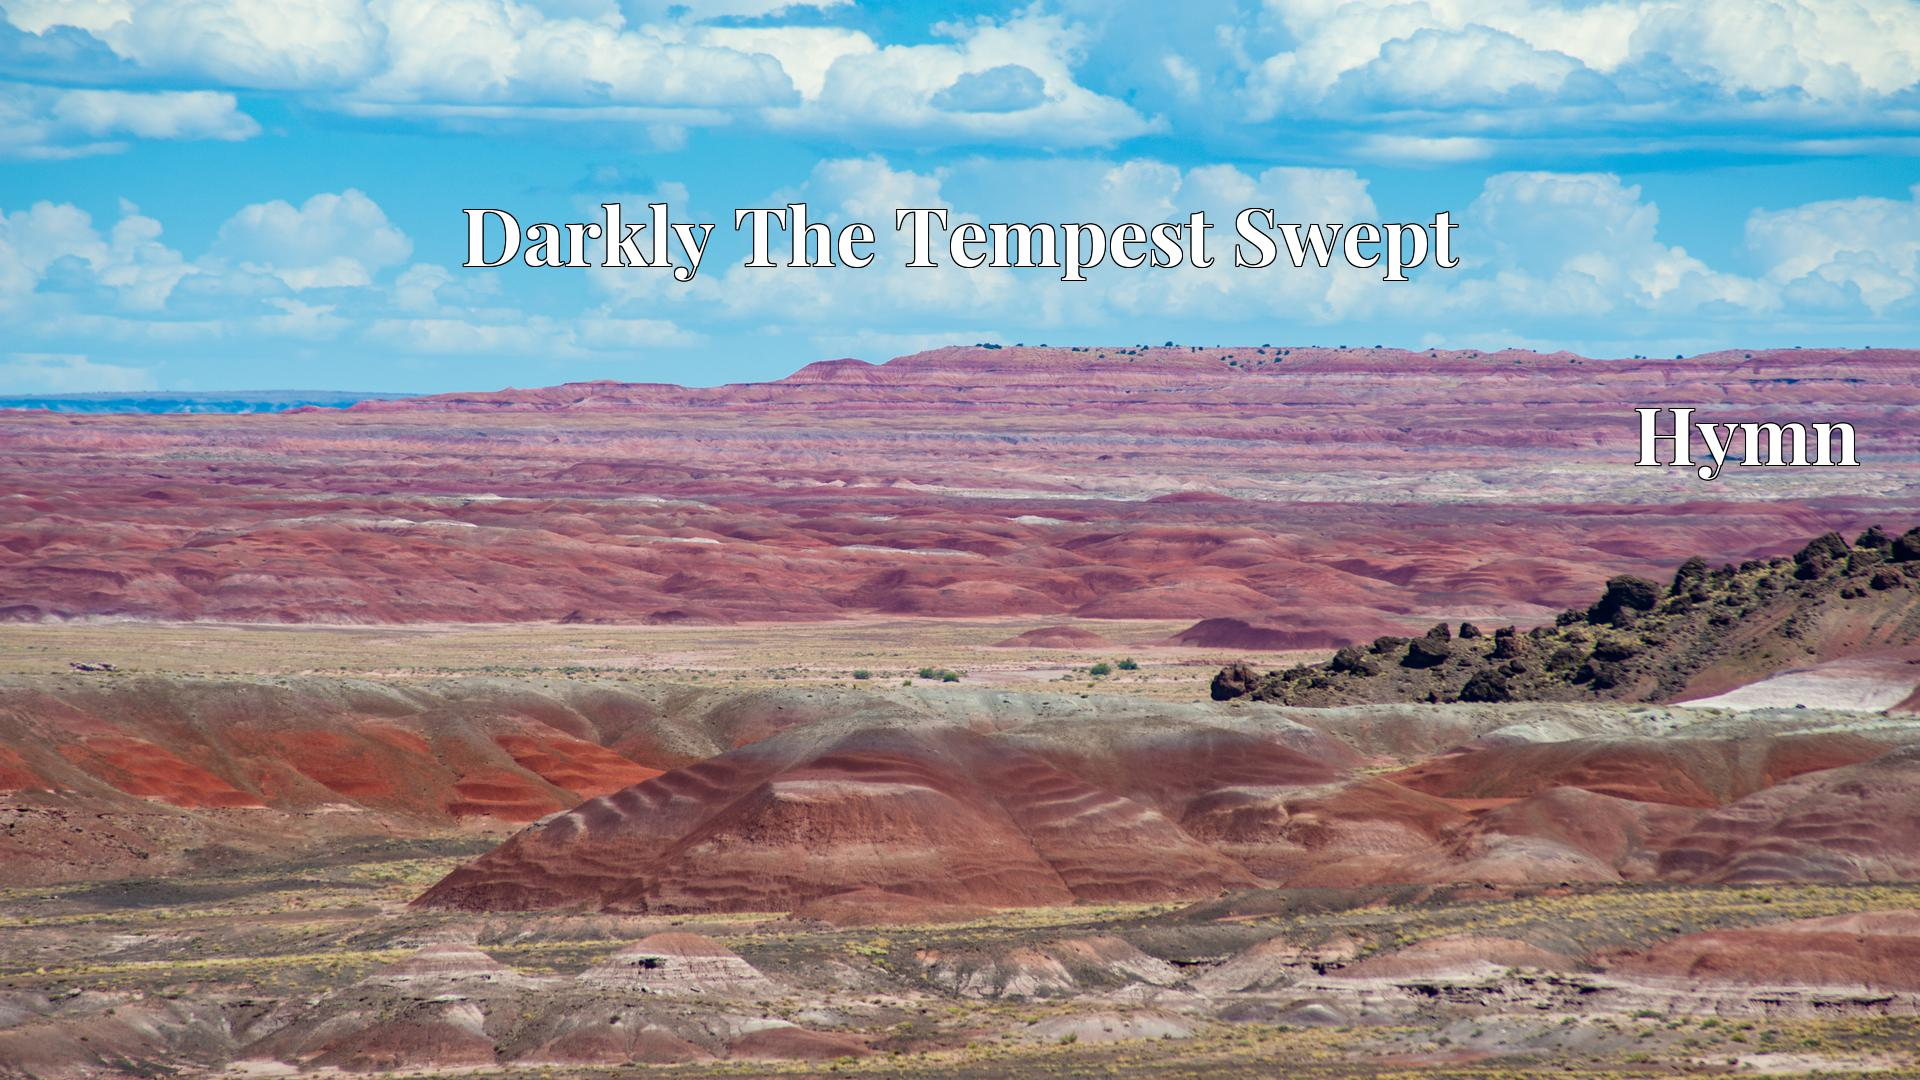 Darkly The Tempest Swept - Hymn